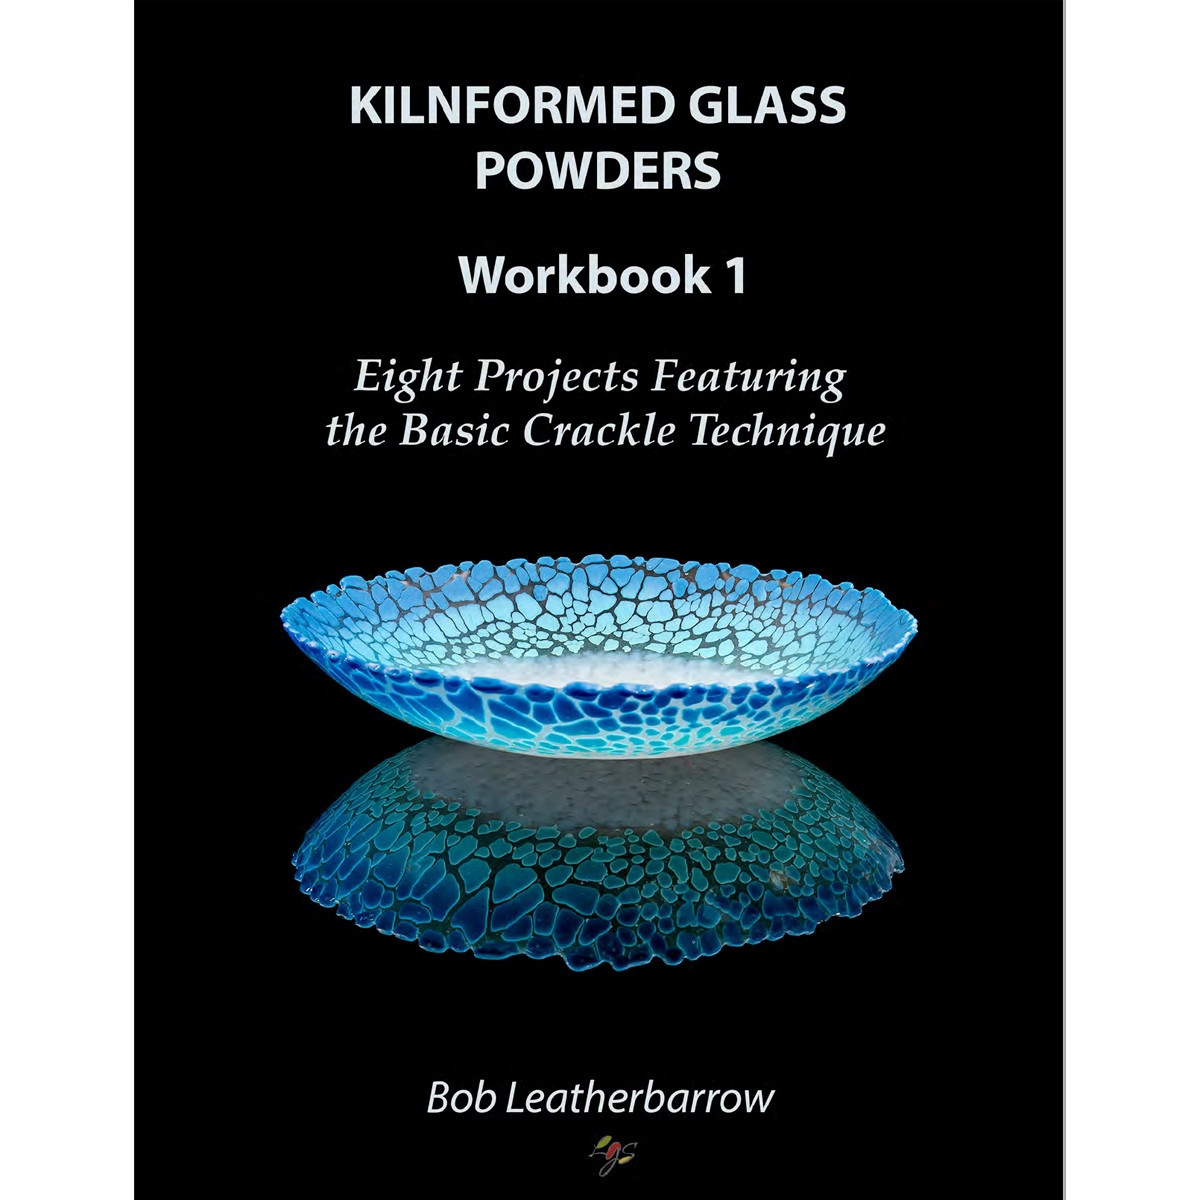 Ebook | Kilnformed Glass Powders Workbook 1 - Eight Projects Featuring the Basic Crackle Technique